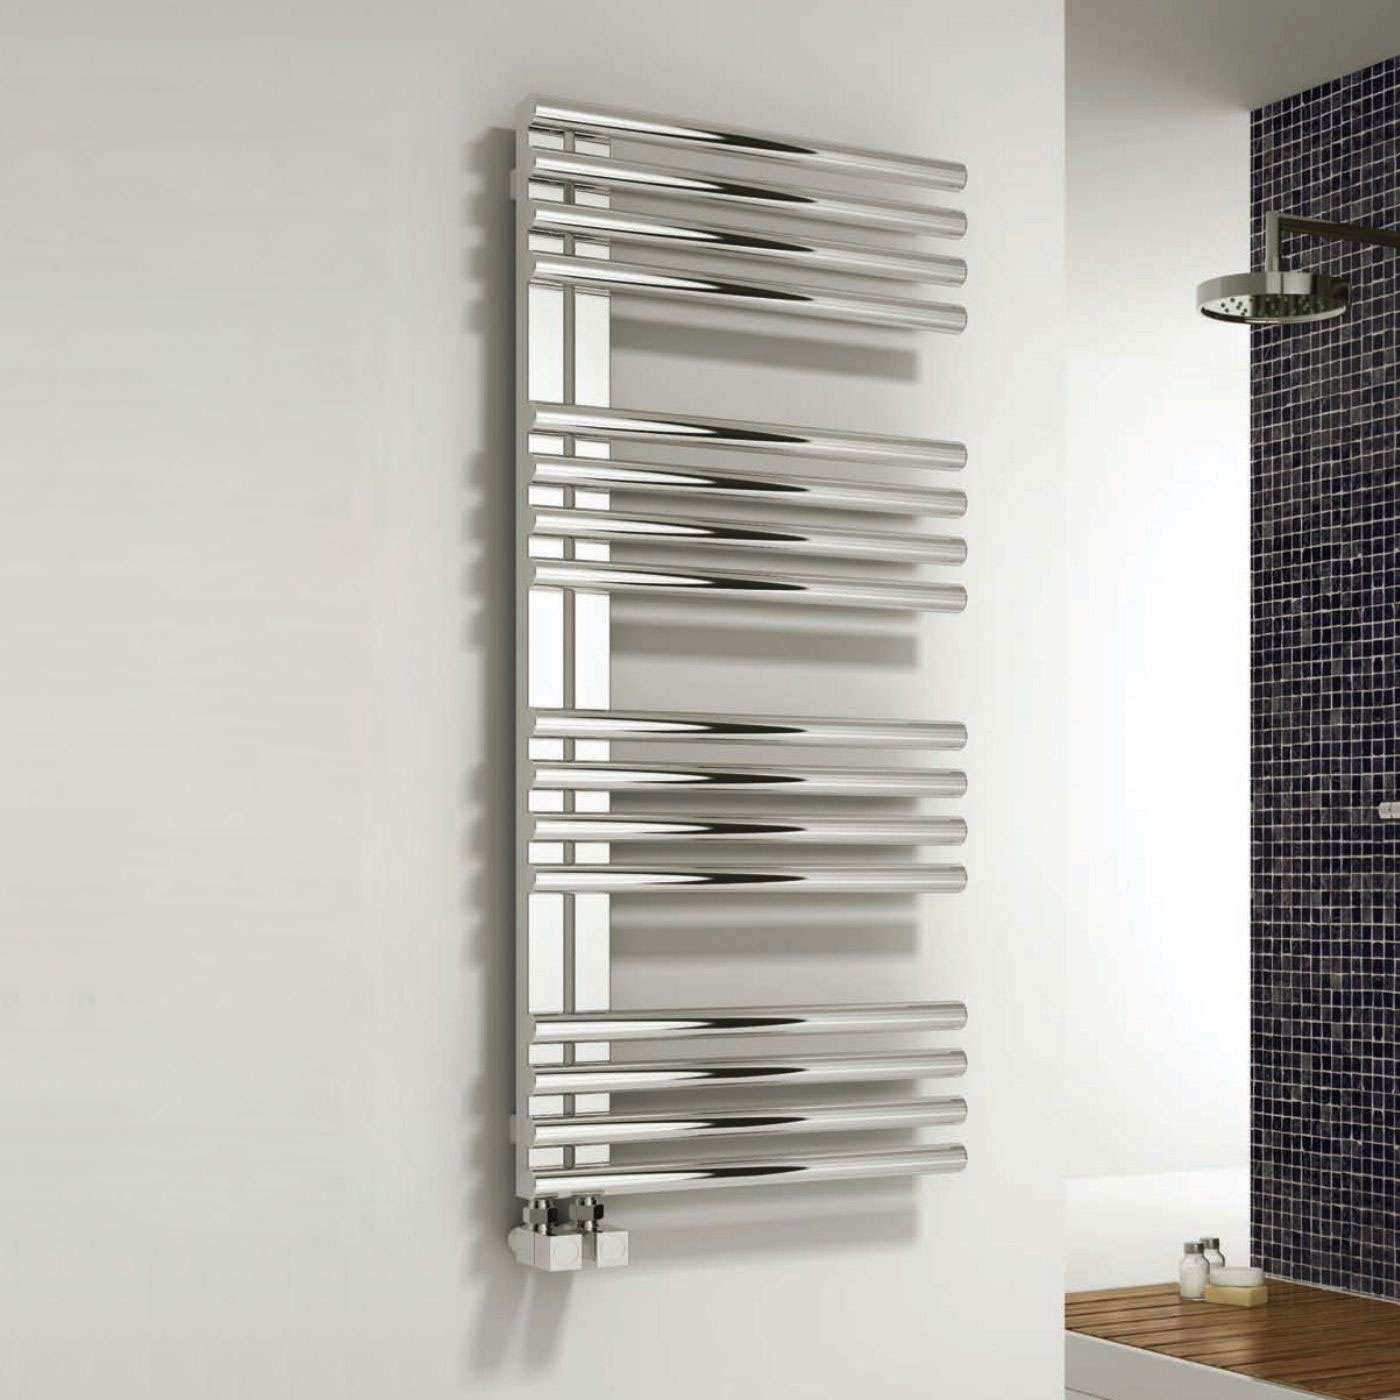 Reina Adora Designer Heated Towel Rail 800mm H x 500mm W Polished Stainless Steel